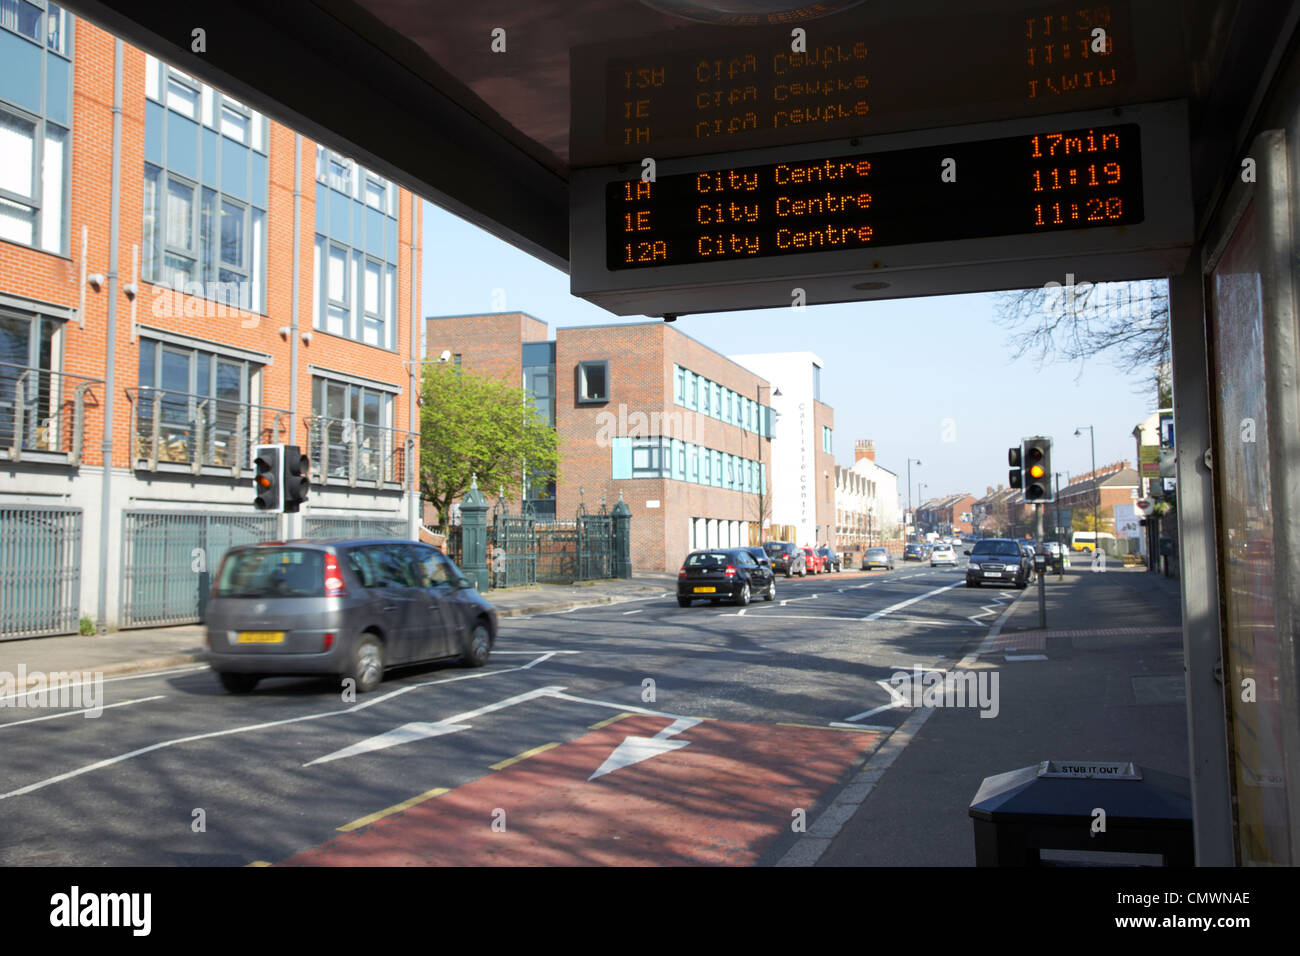 bus tracking system bustrak on a bus shelter stop on a main road in Belfast Northern Ireland uk - Stock Image